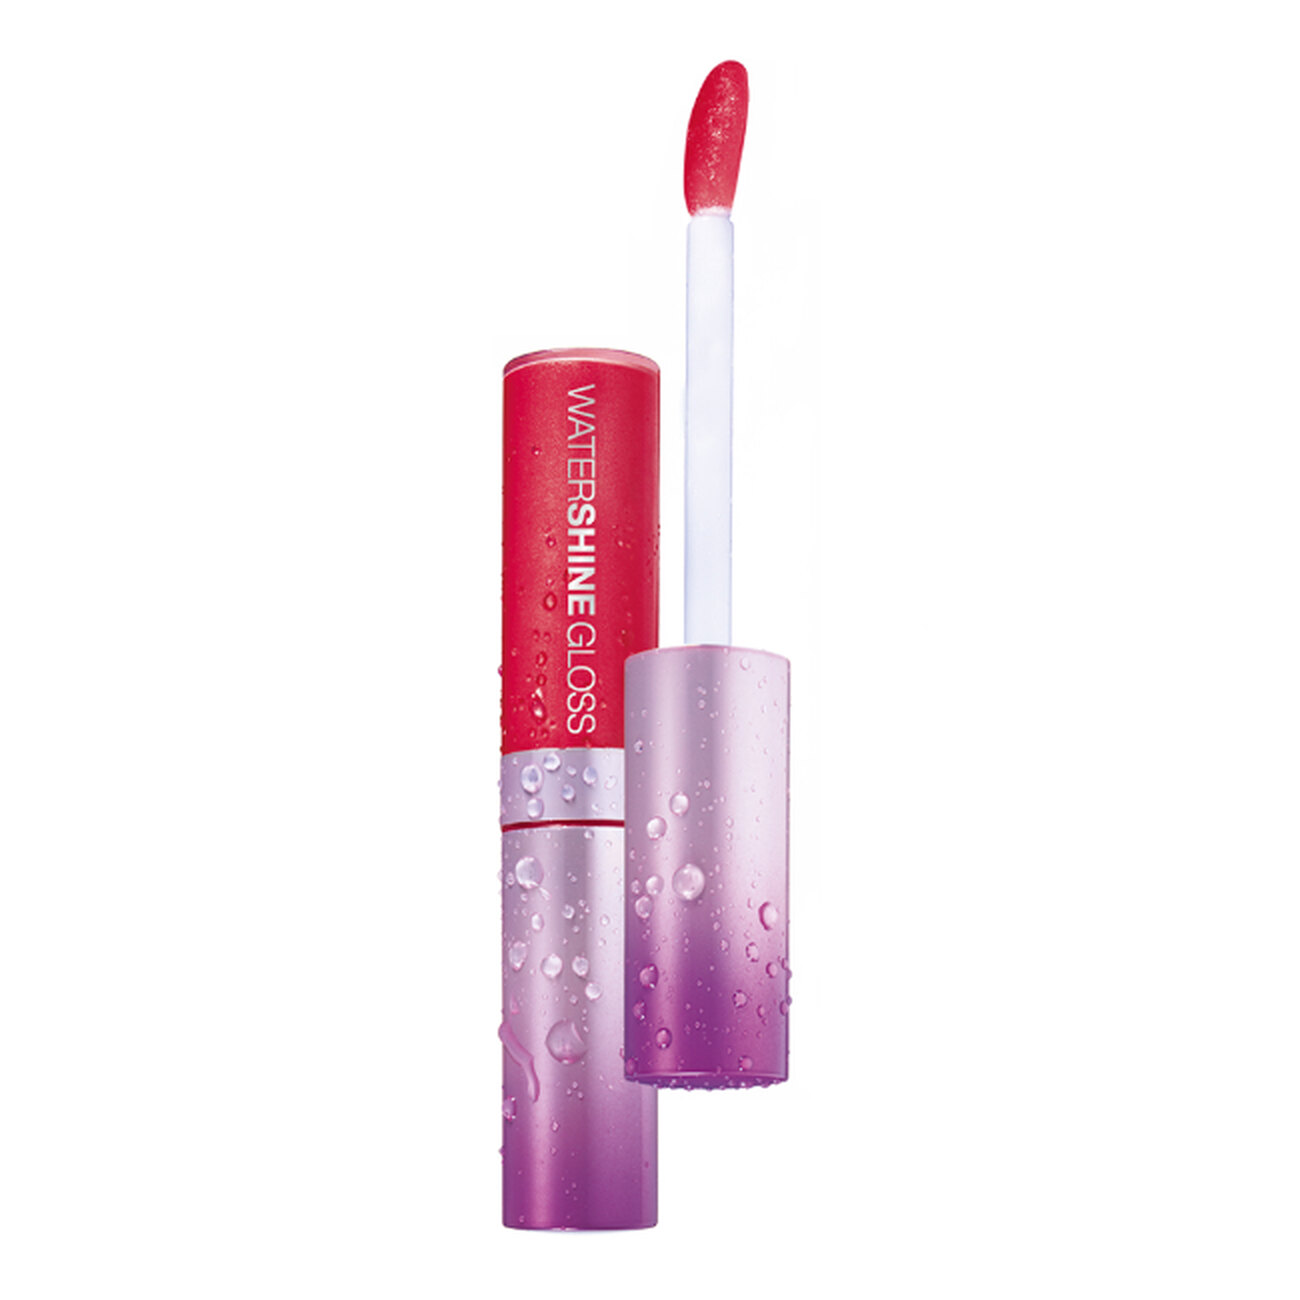 Блеск для губ Watershine Gloss (190), Maybelline